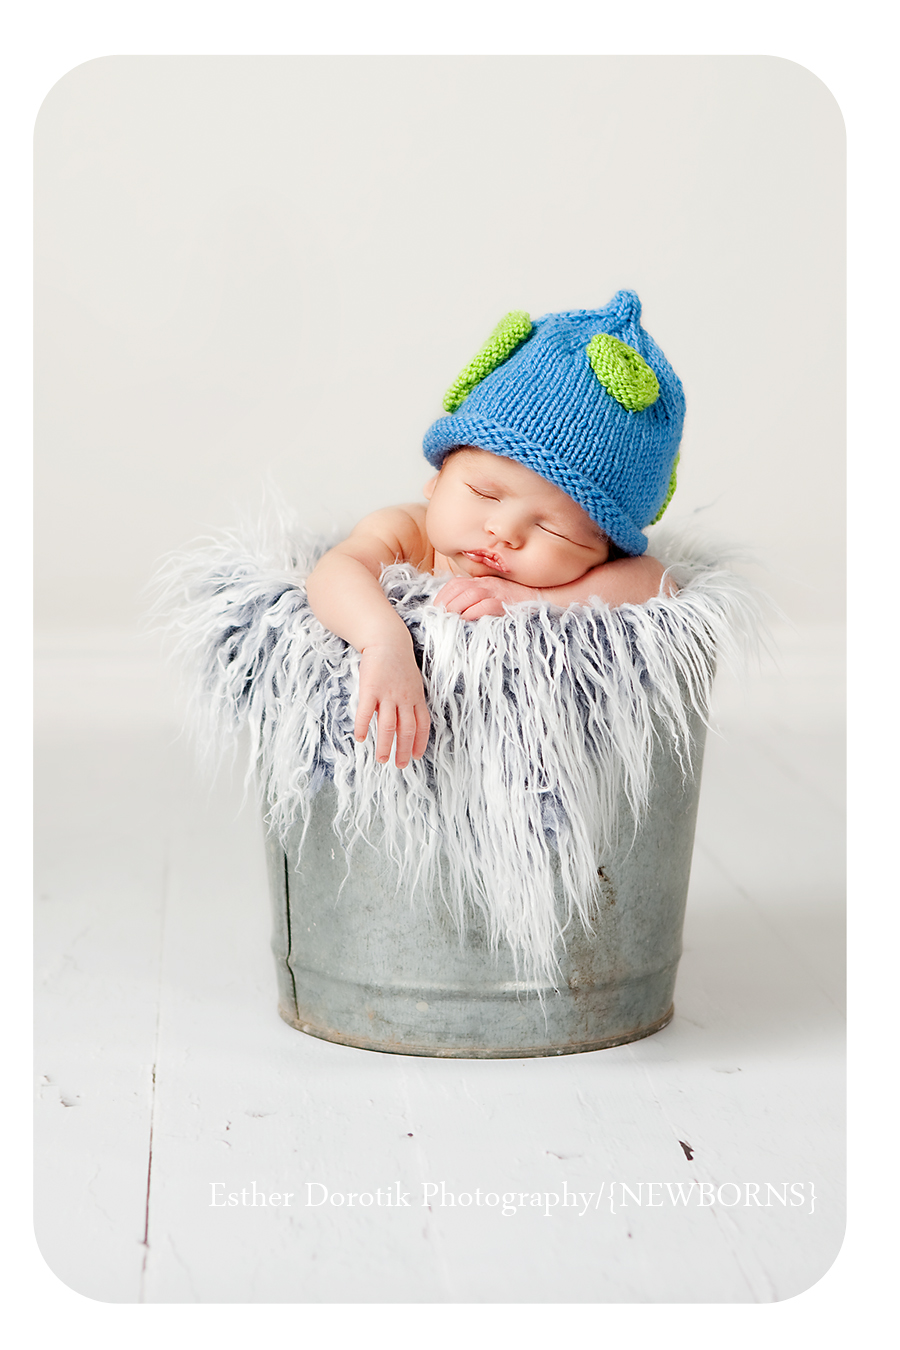 newborn-baby-boy-in-metal-bucket-with-blue-hat-green-dots-in-fur